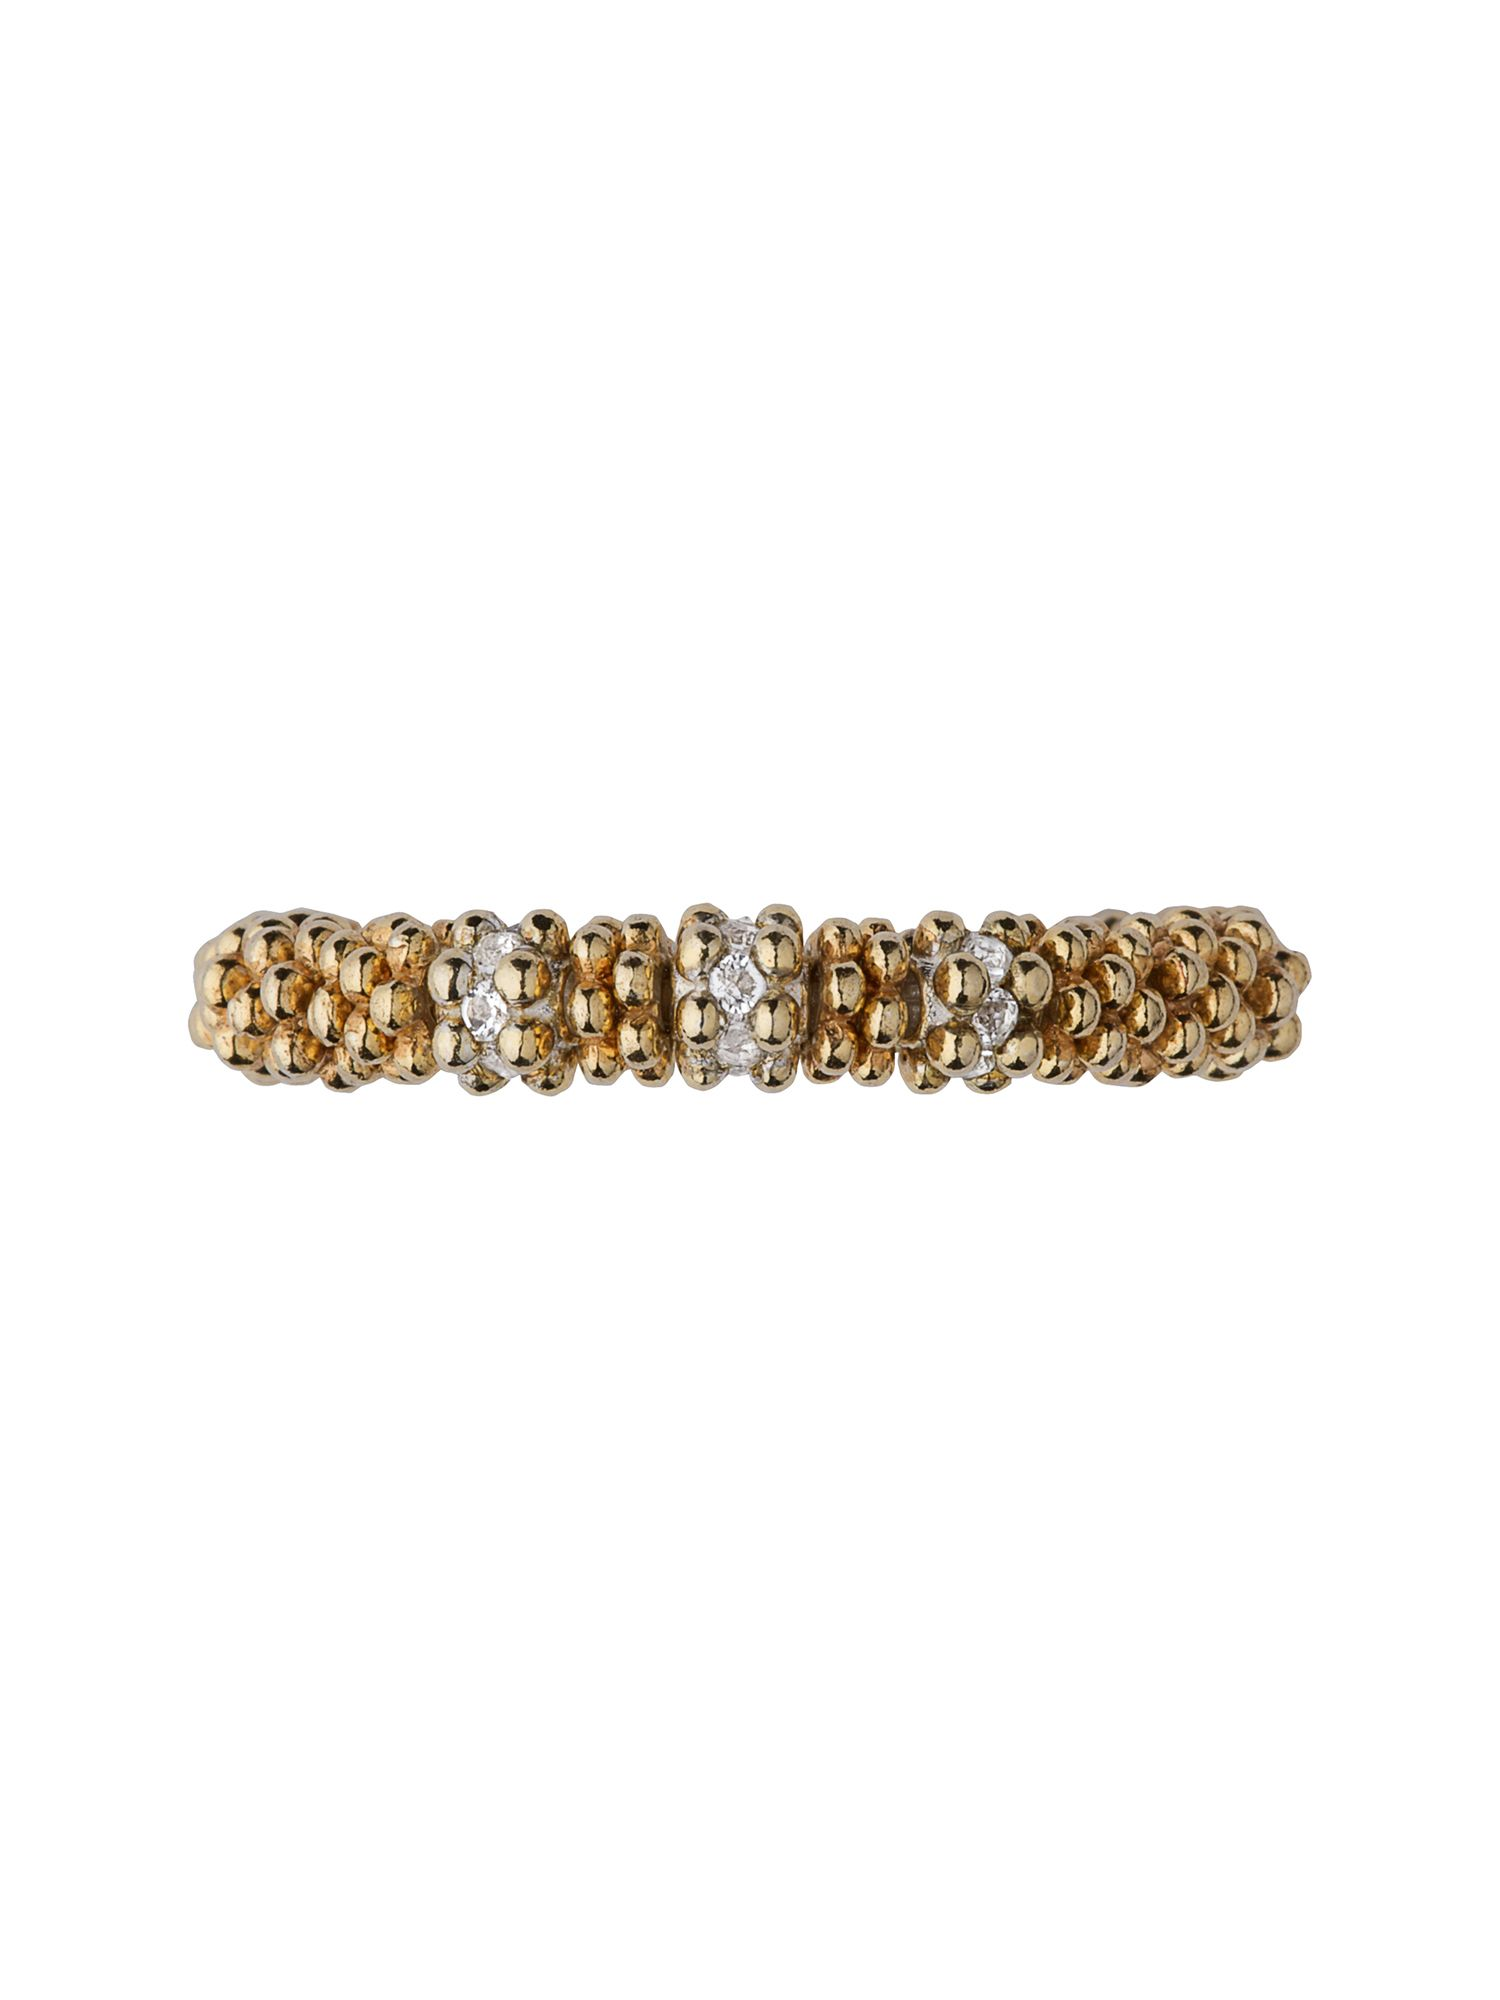 Effervescence star xs ring - yellow gold & white